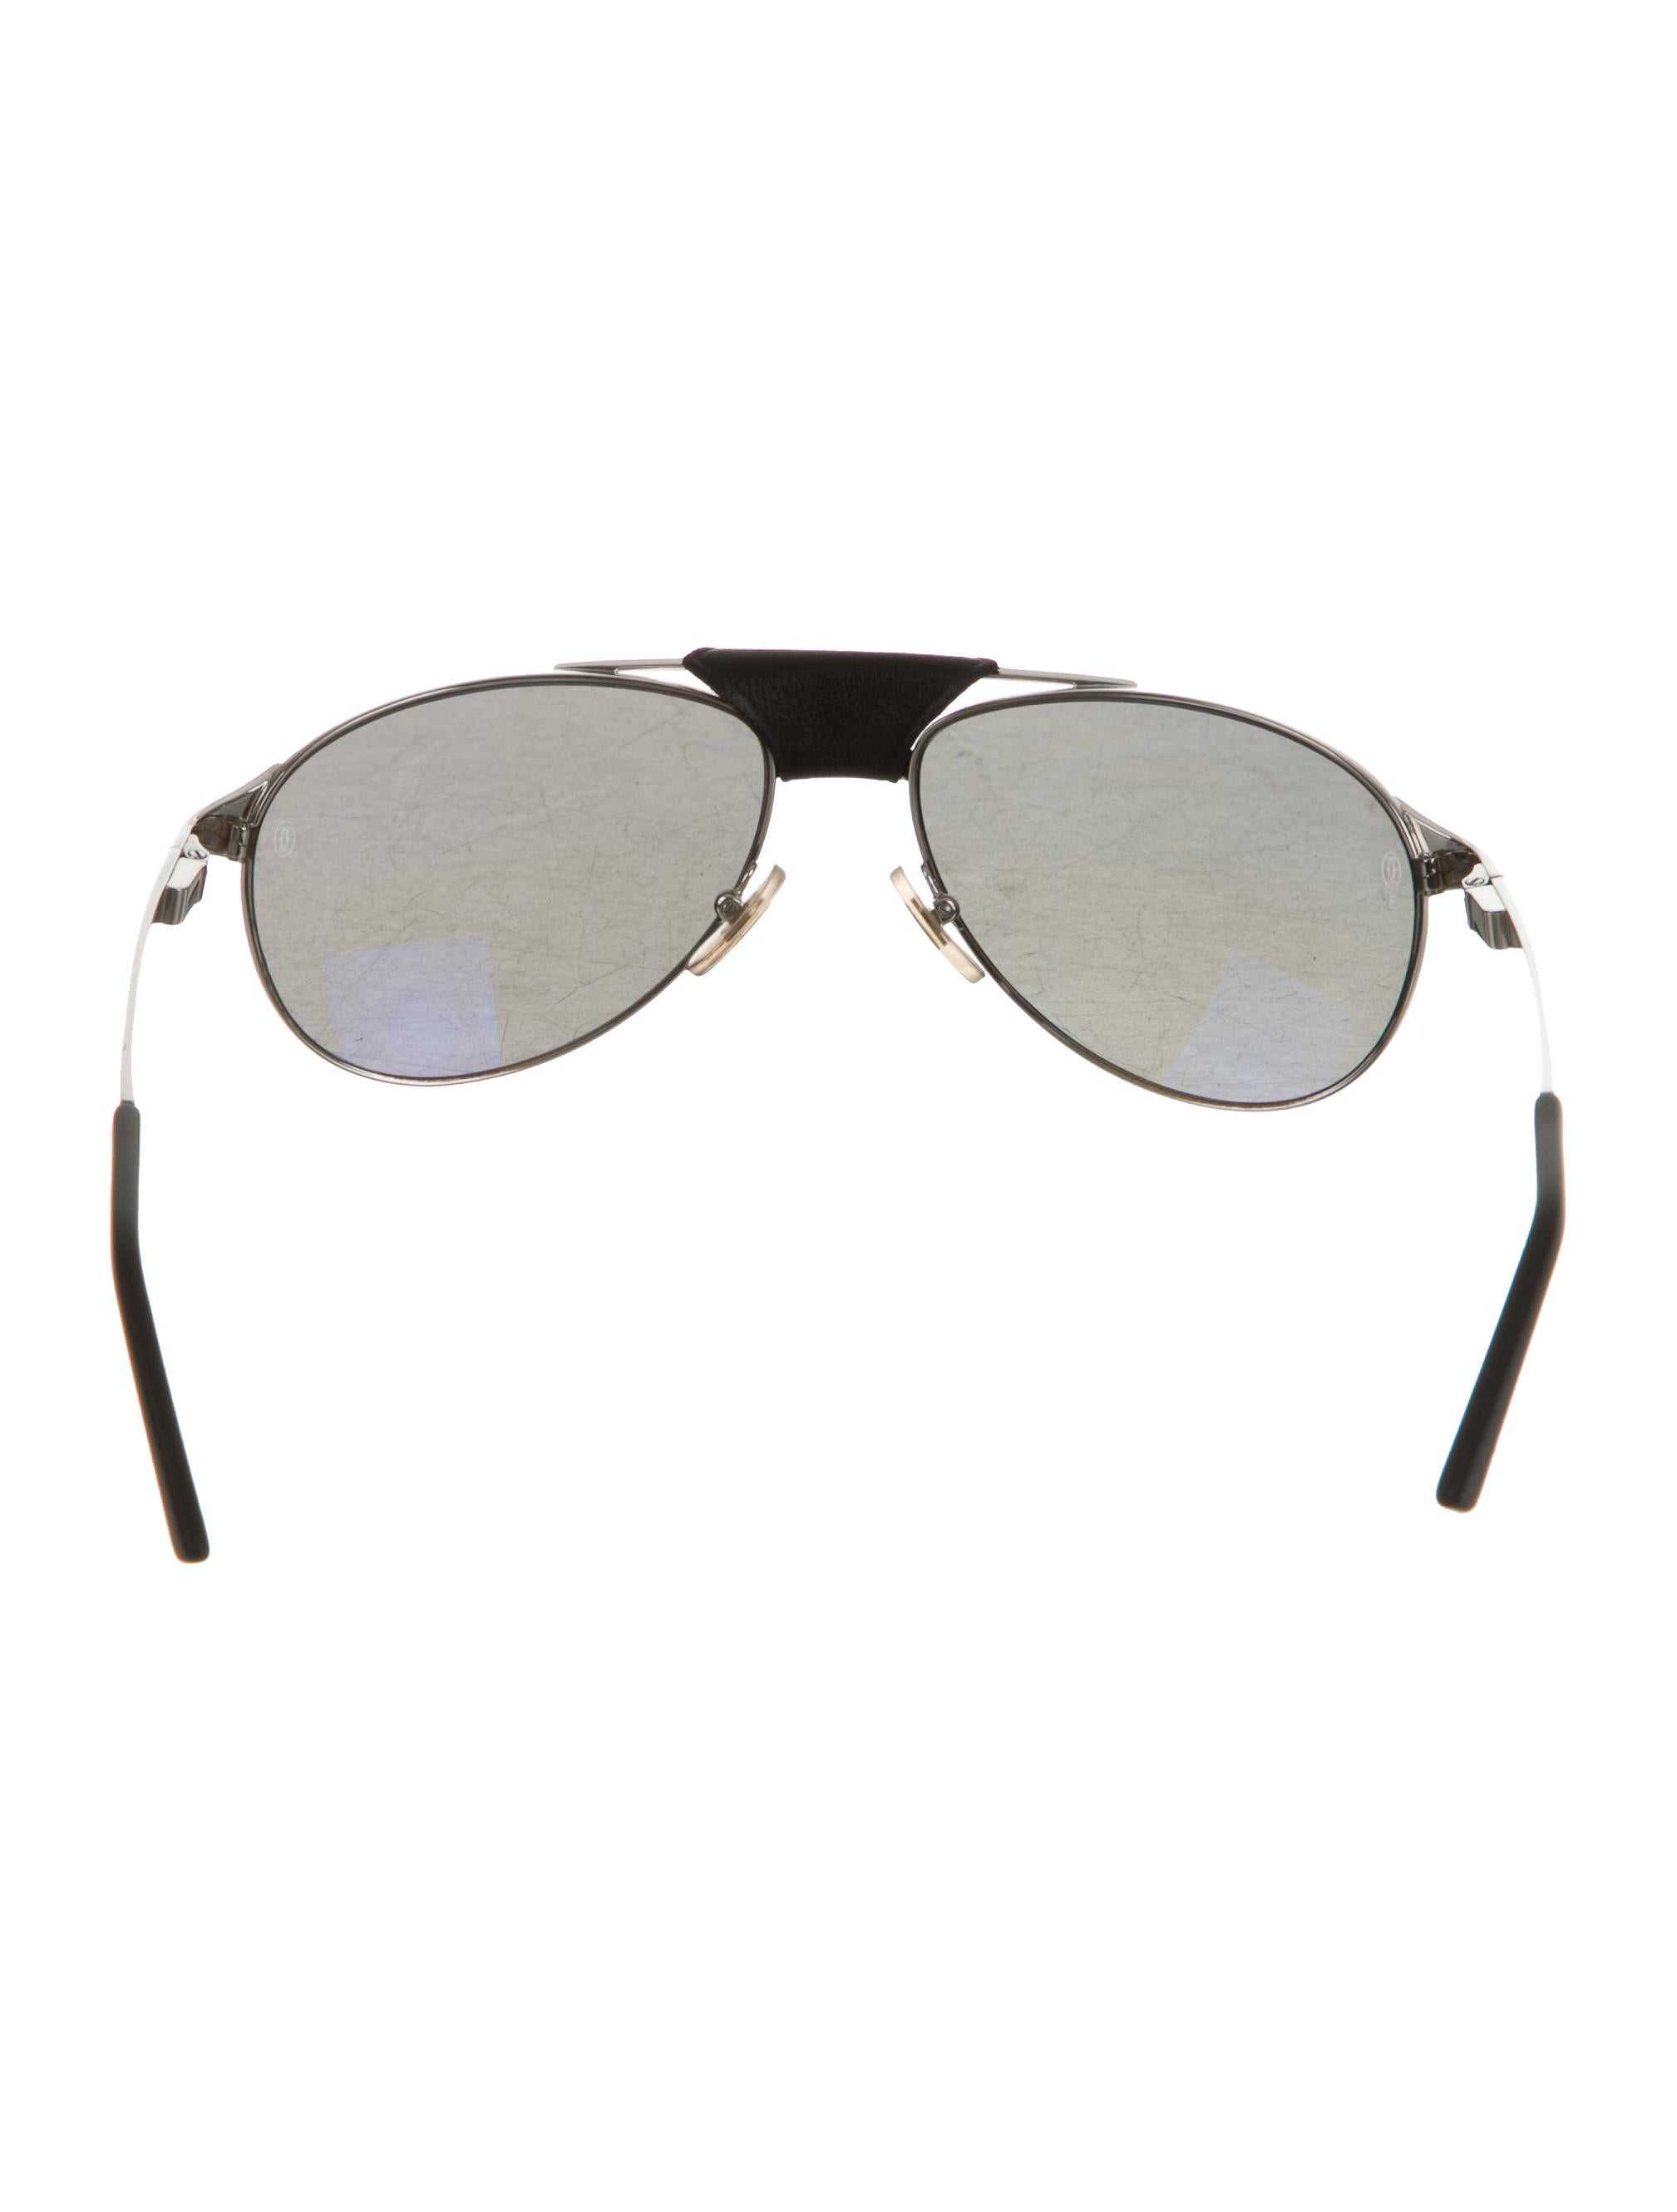 7c7aacfab43 Cartier Edition Santos-Dumont Sunglasses - Accessories - CRT28987 ...